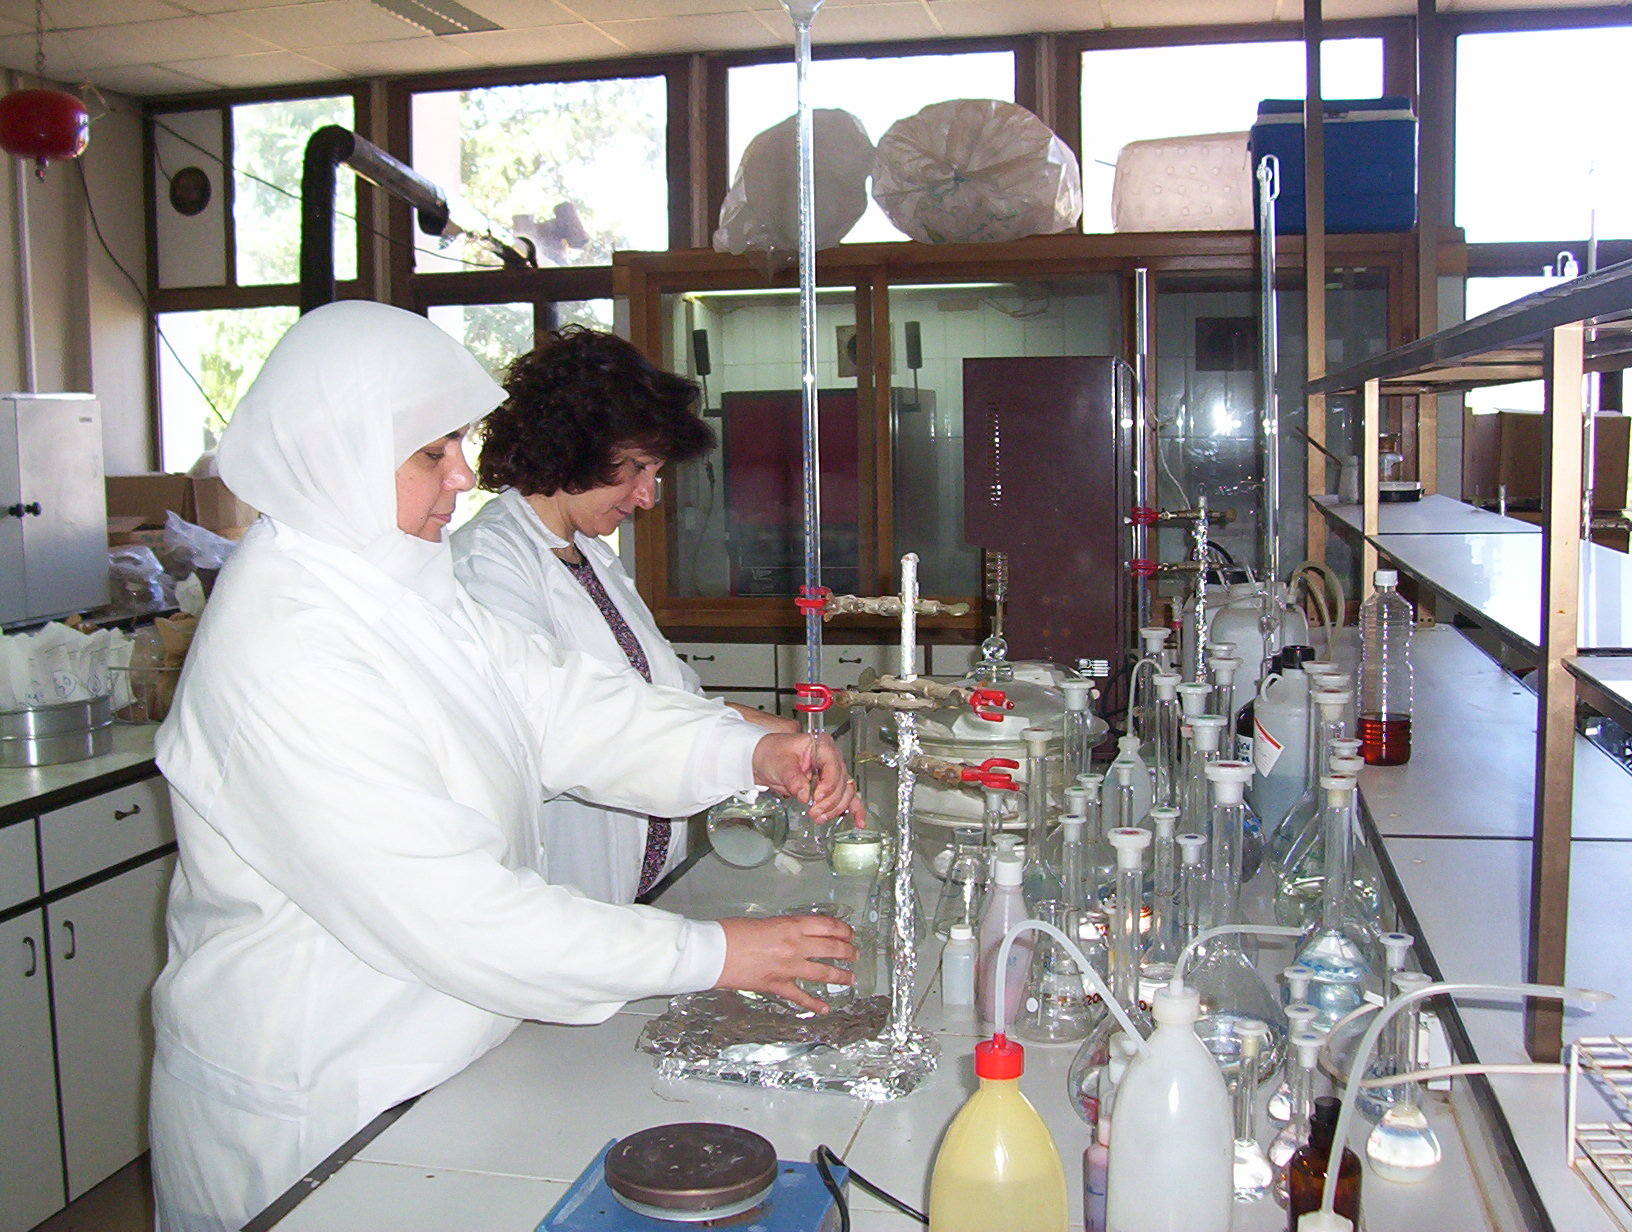 The Chemical Laboratory